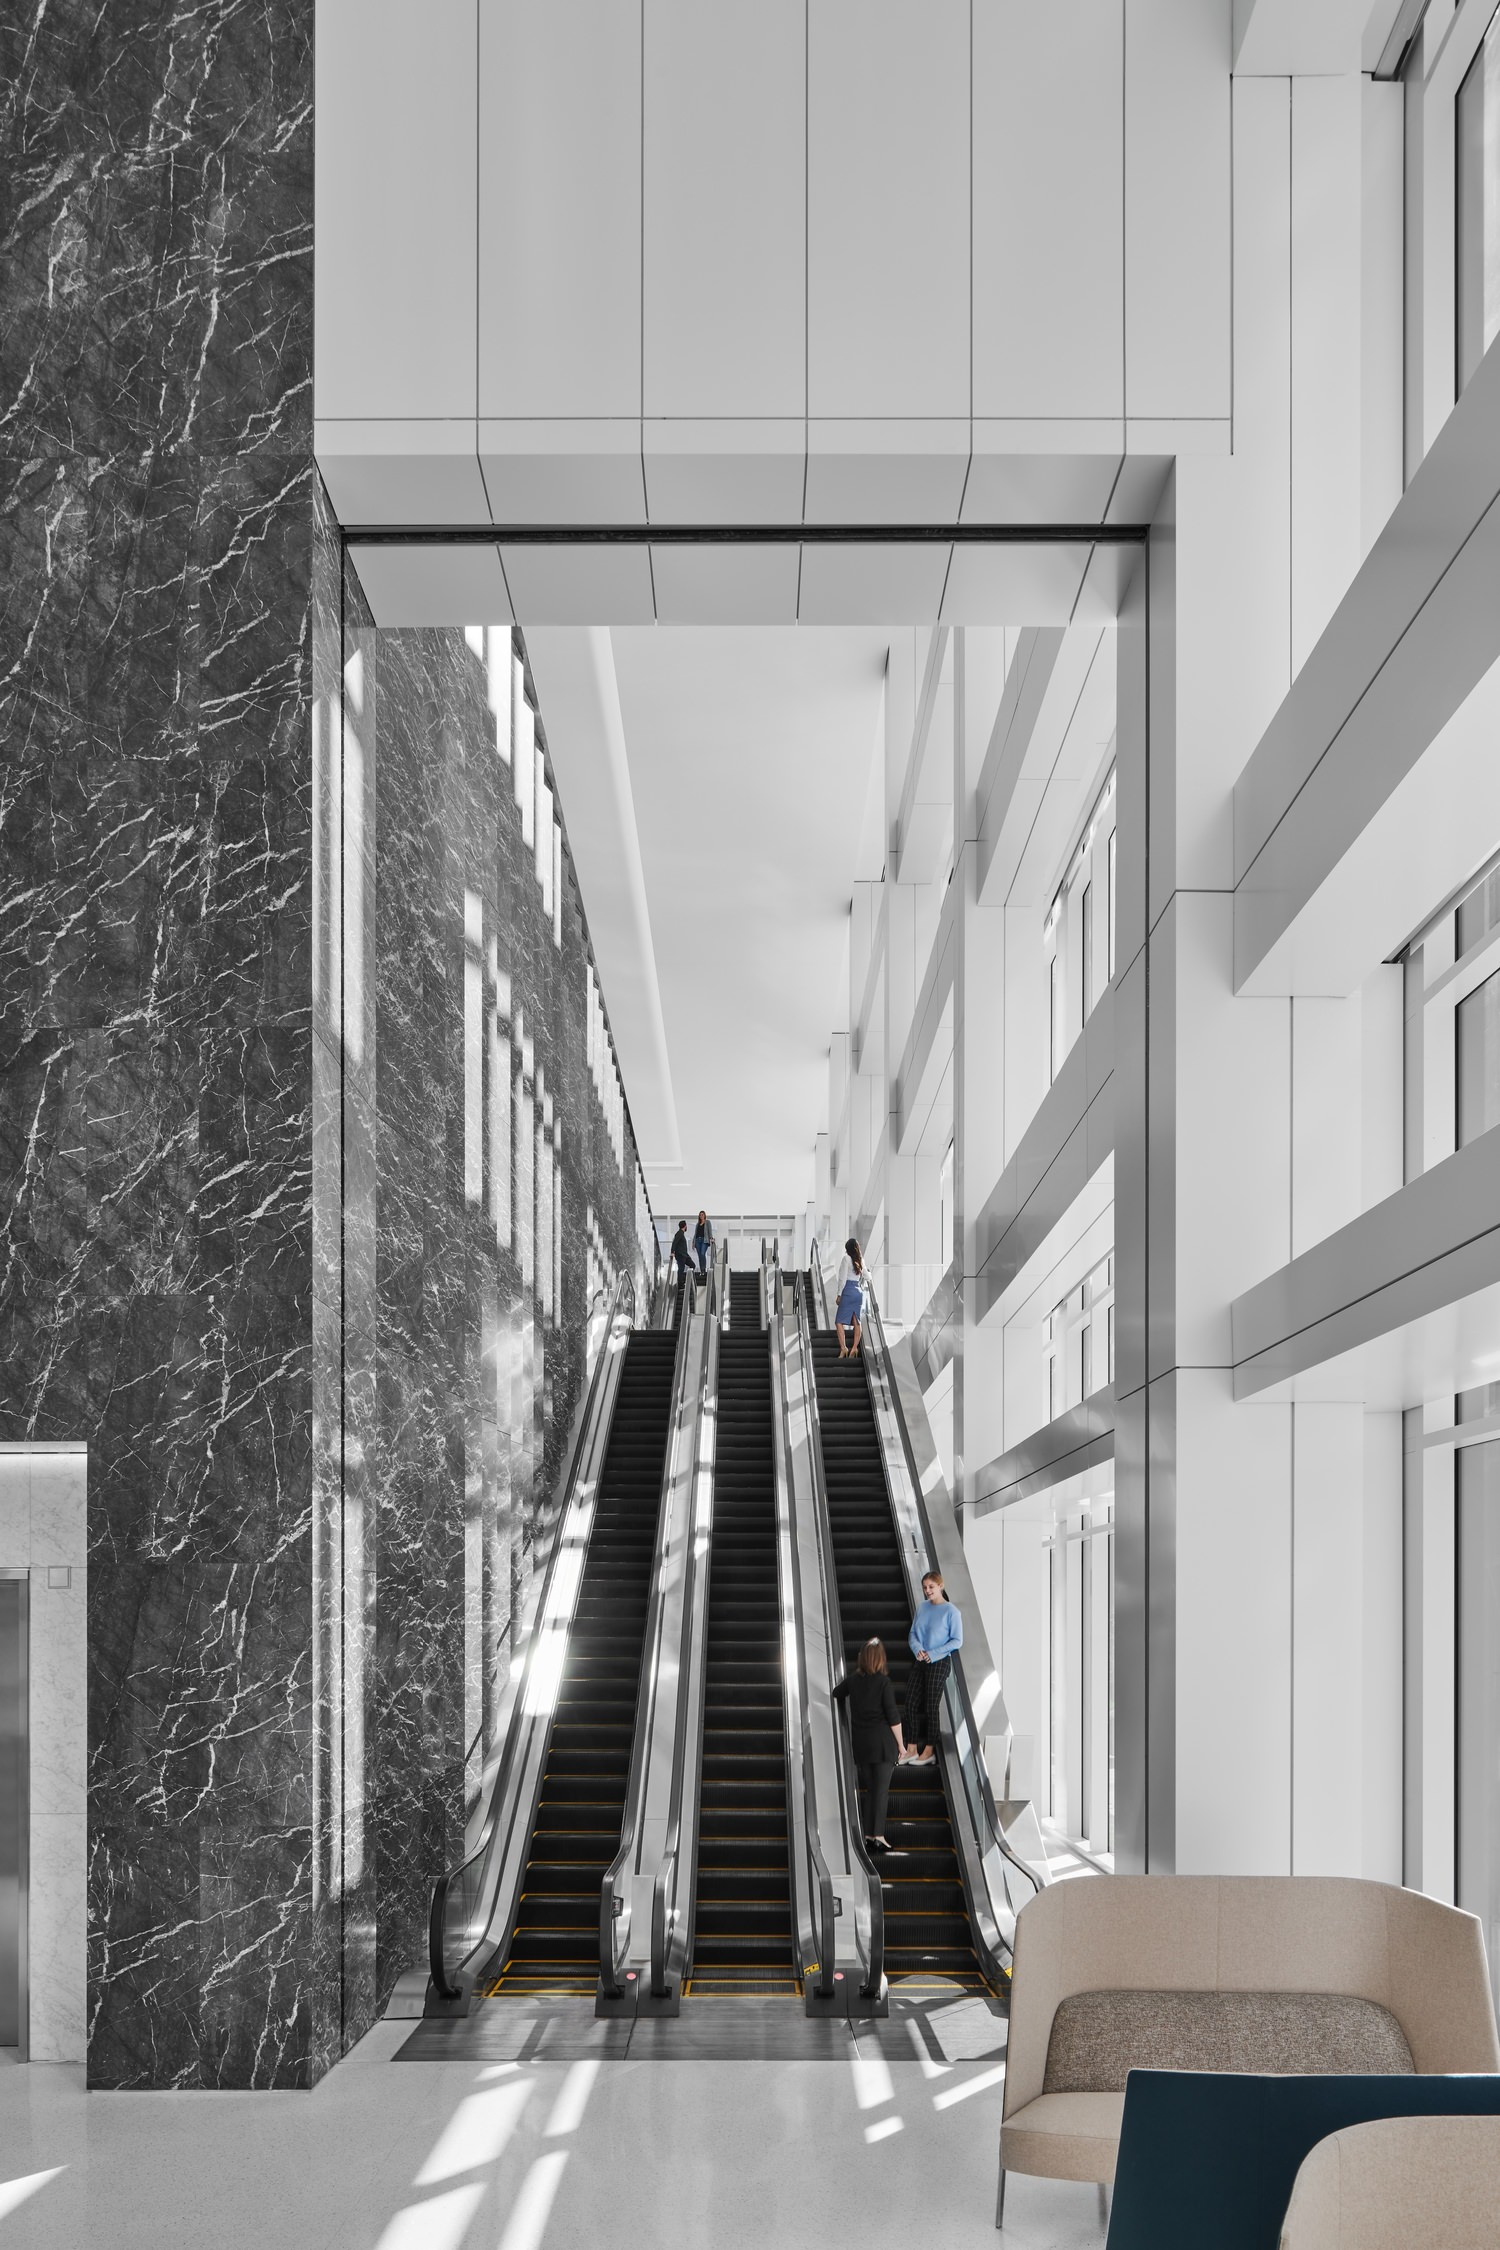 An escalator goes up to another level inside a white and black marbled building.